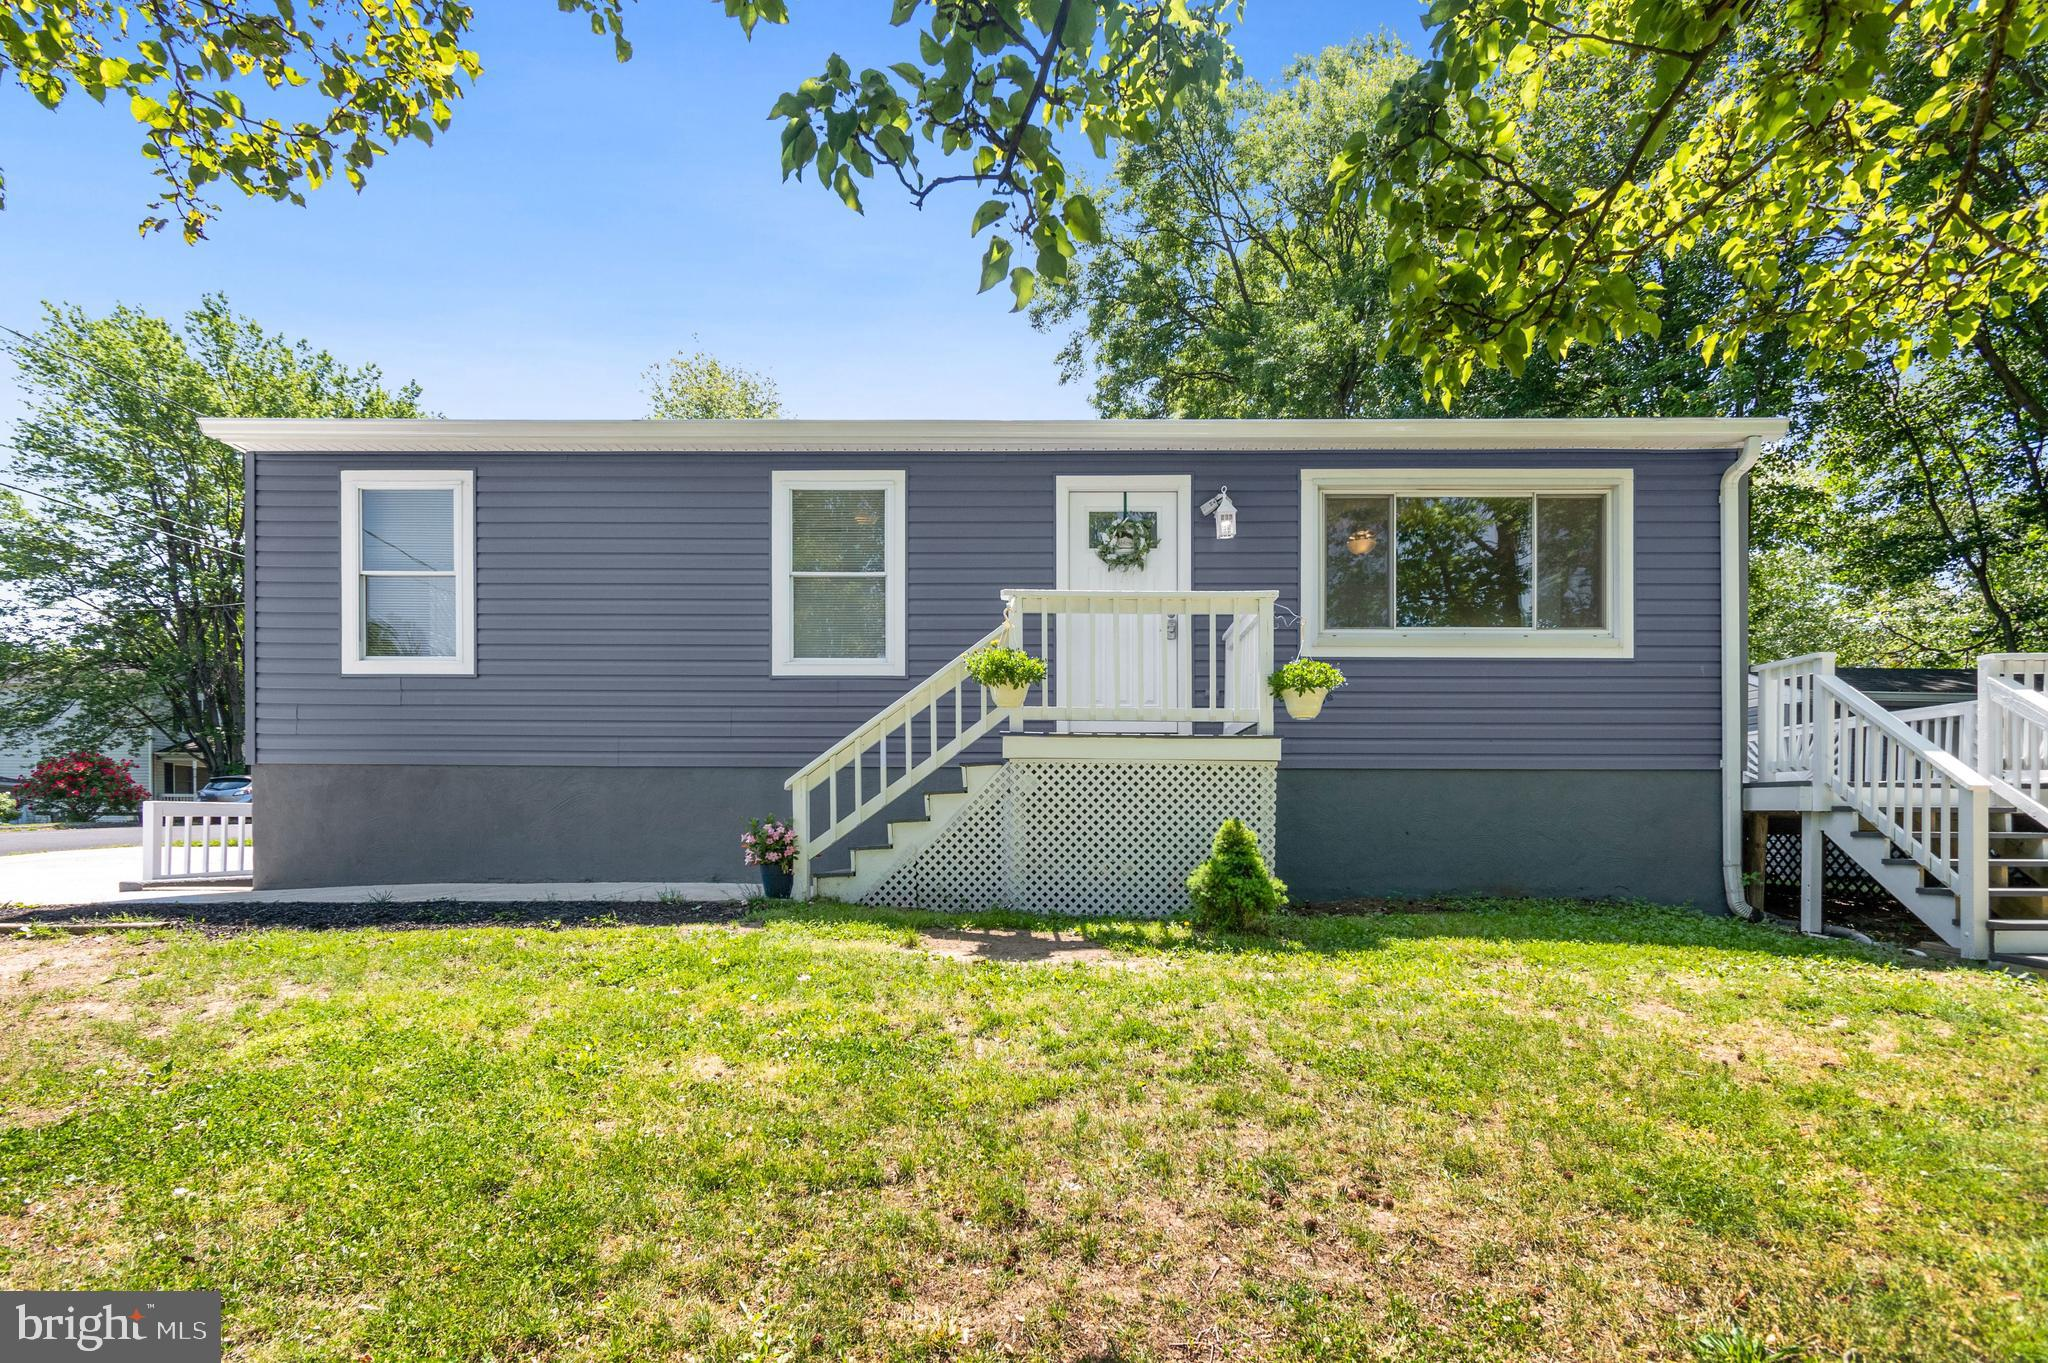 Radiant Rancher Lovingly Renovated by Owner. Upon entering the home you are greeted by cool tones, b